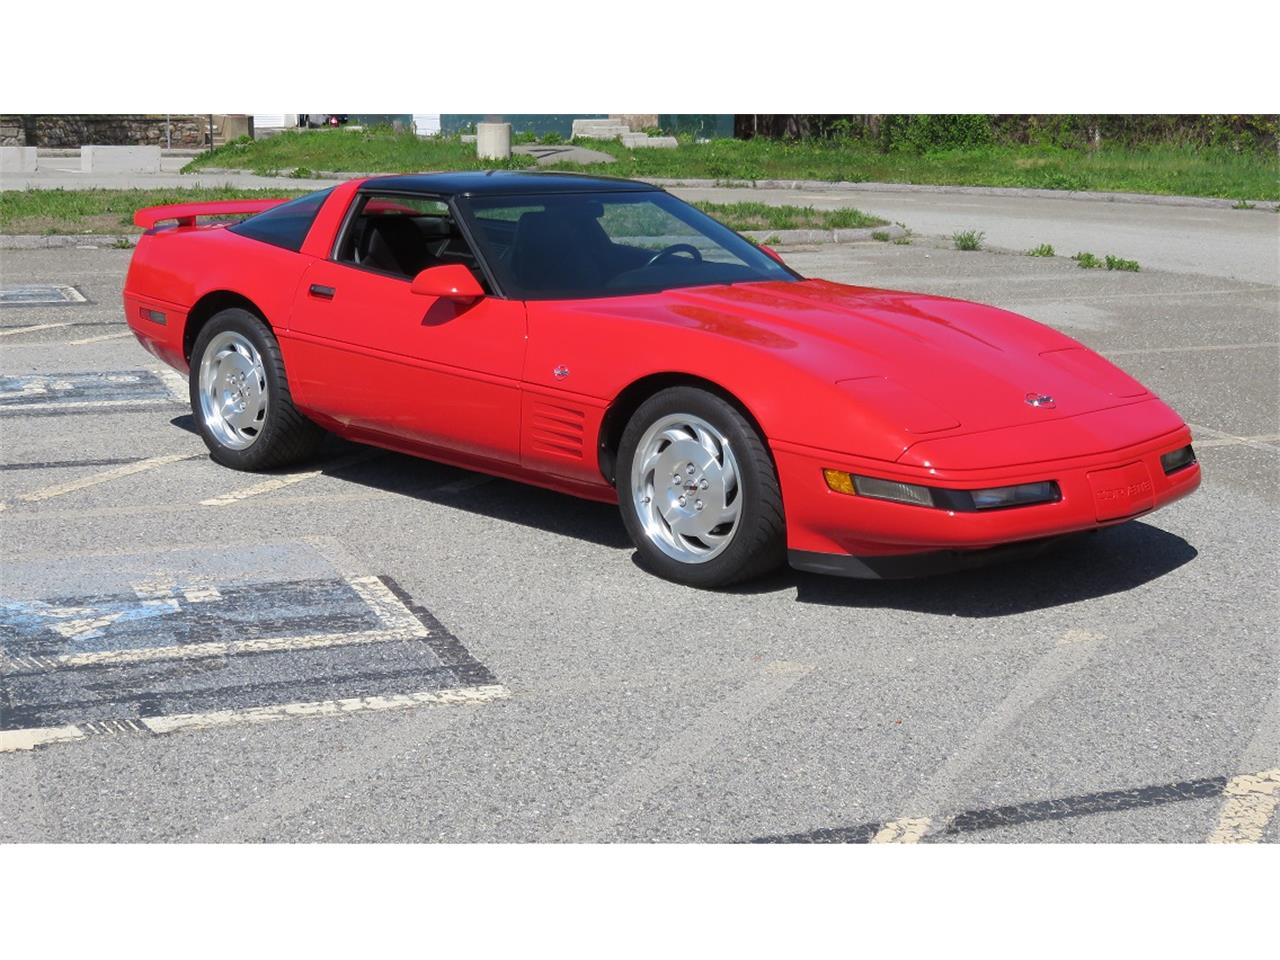 Large Picture of '94 Chevrolet Corvette located in Connecticut - $23,900.00 Offered by a Private Seller - LFZL